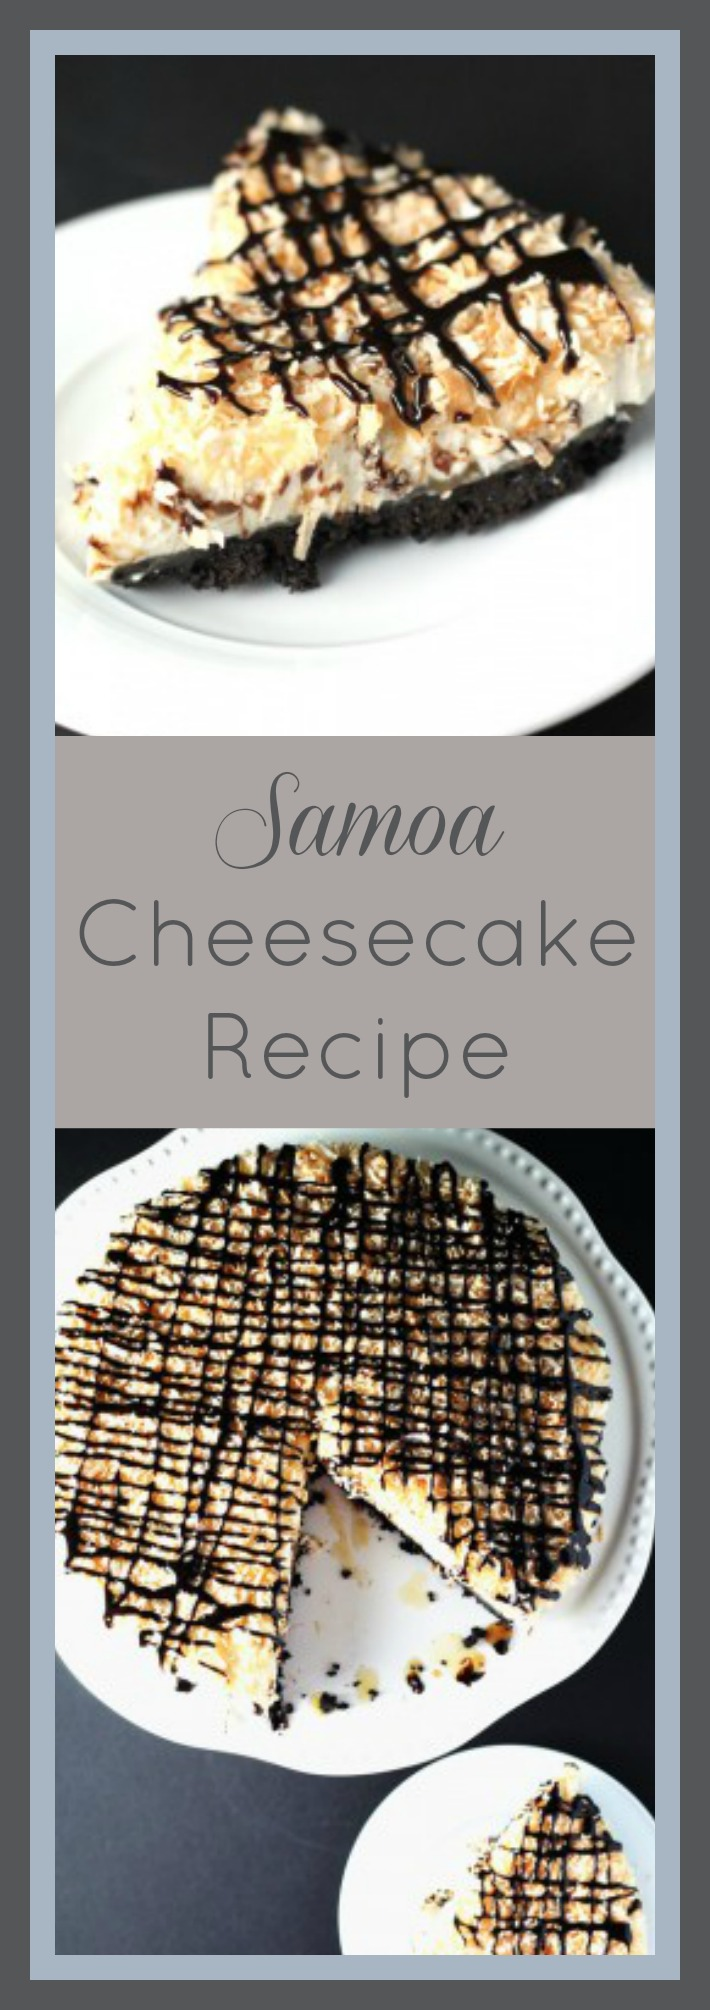 samoa-cheesecake-recipe-thekrave